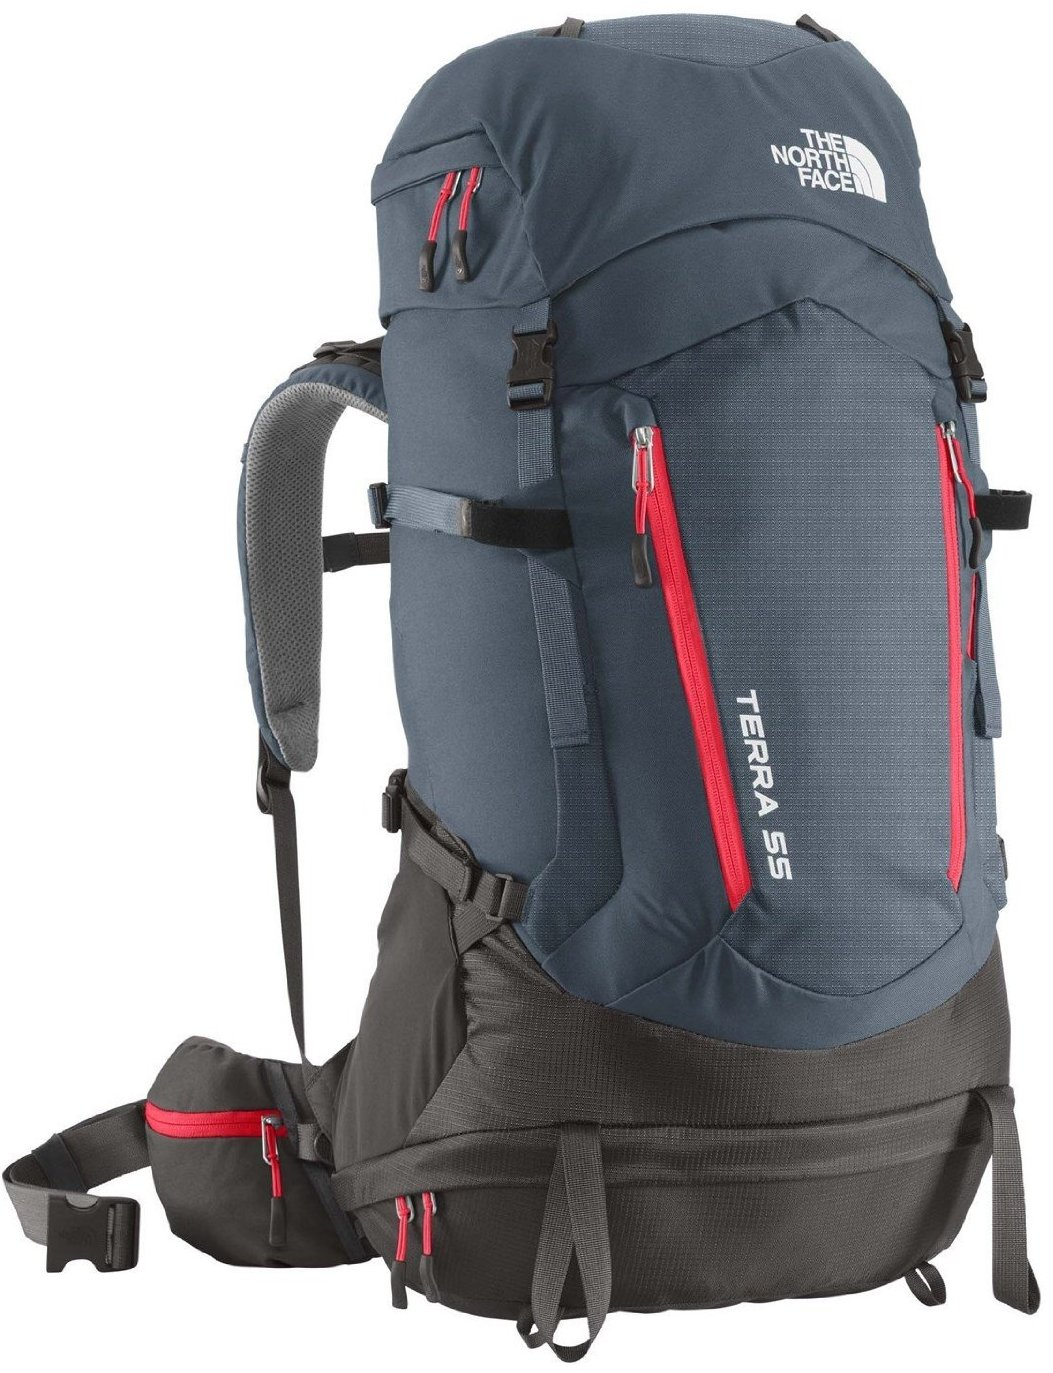 Best Backpacks For Backpacking BSaWzoqP